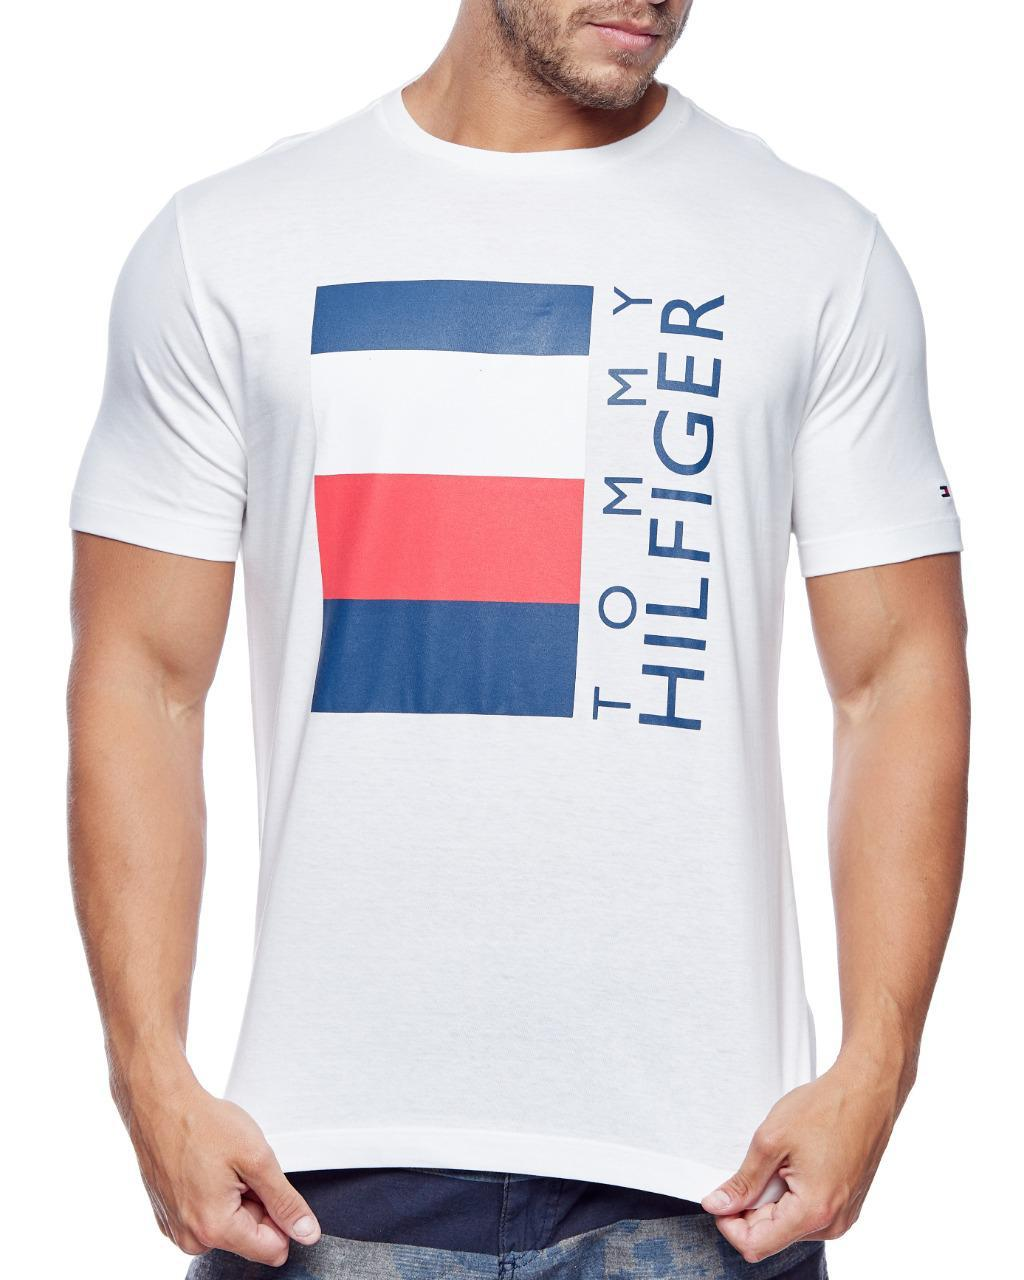 Camiseta Tommy Hilfiger Masculina Flag Lettering TH Branco